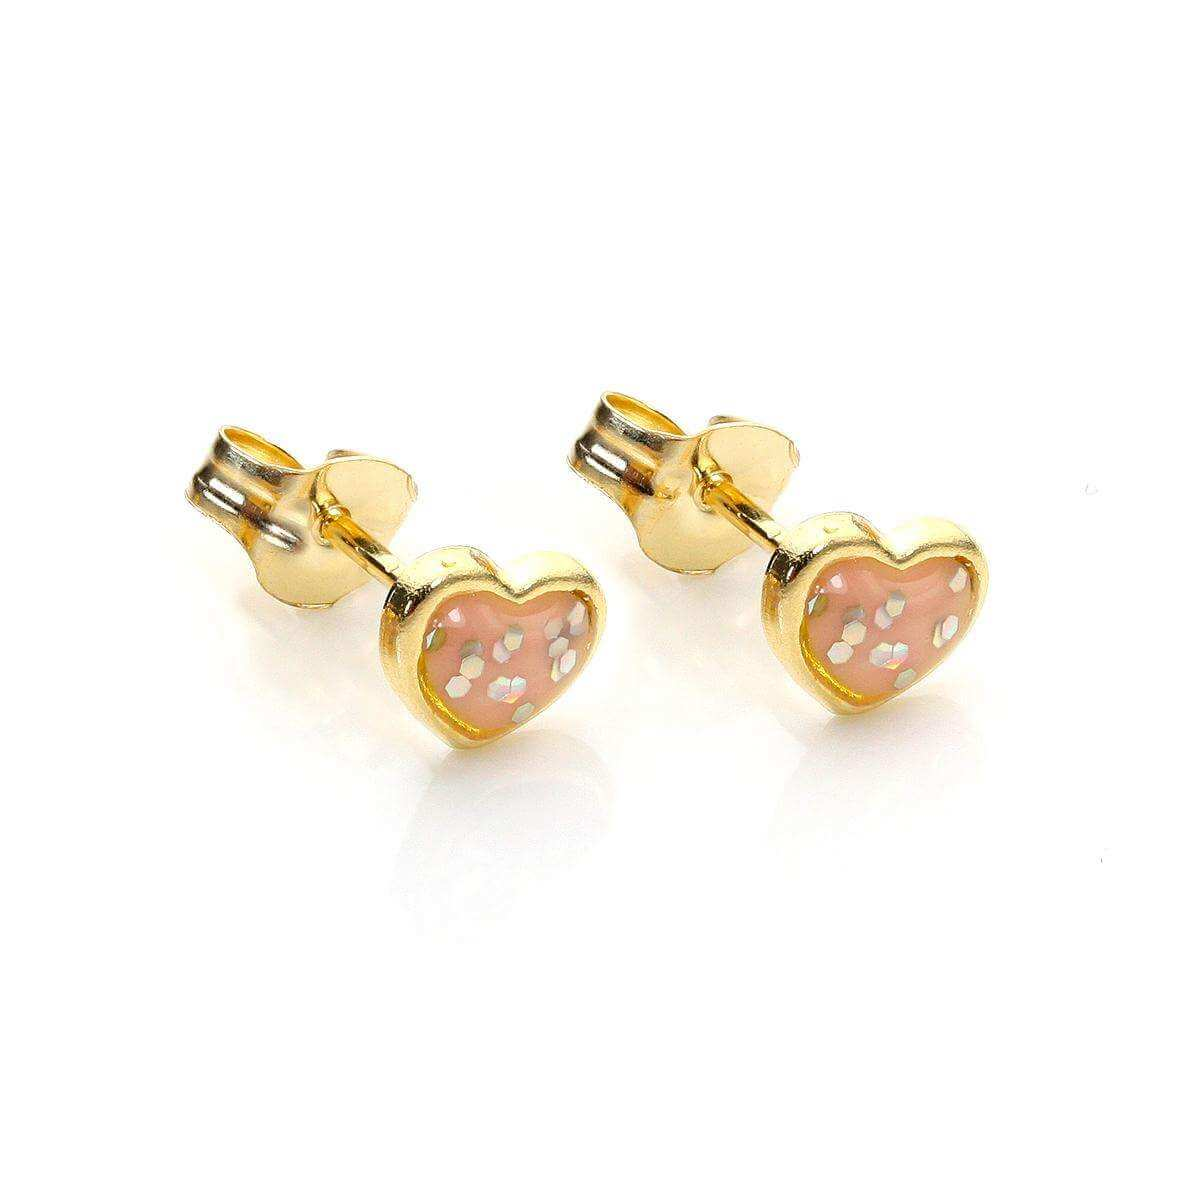 9ct Yellow Gold Enamelled & Glitter Heart Stud Earrings